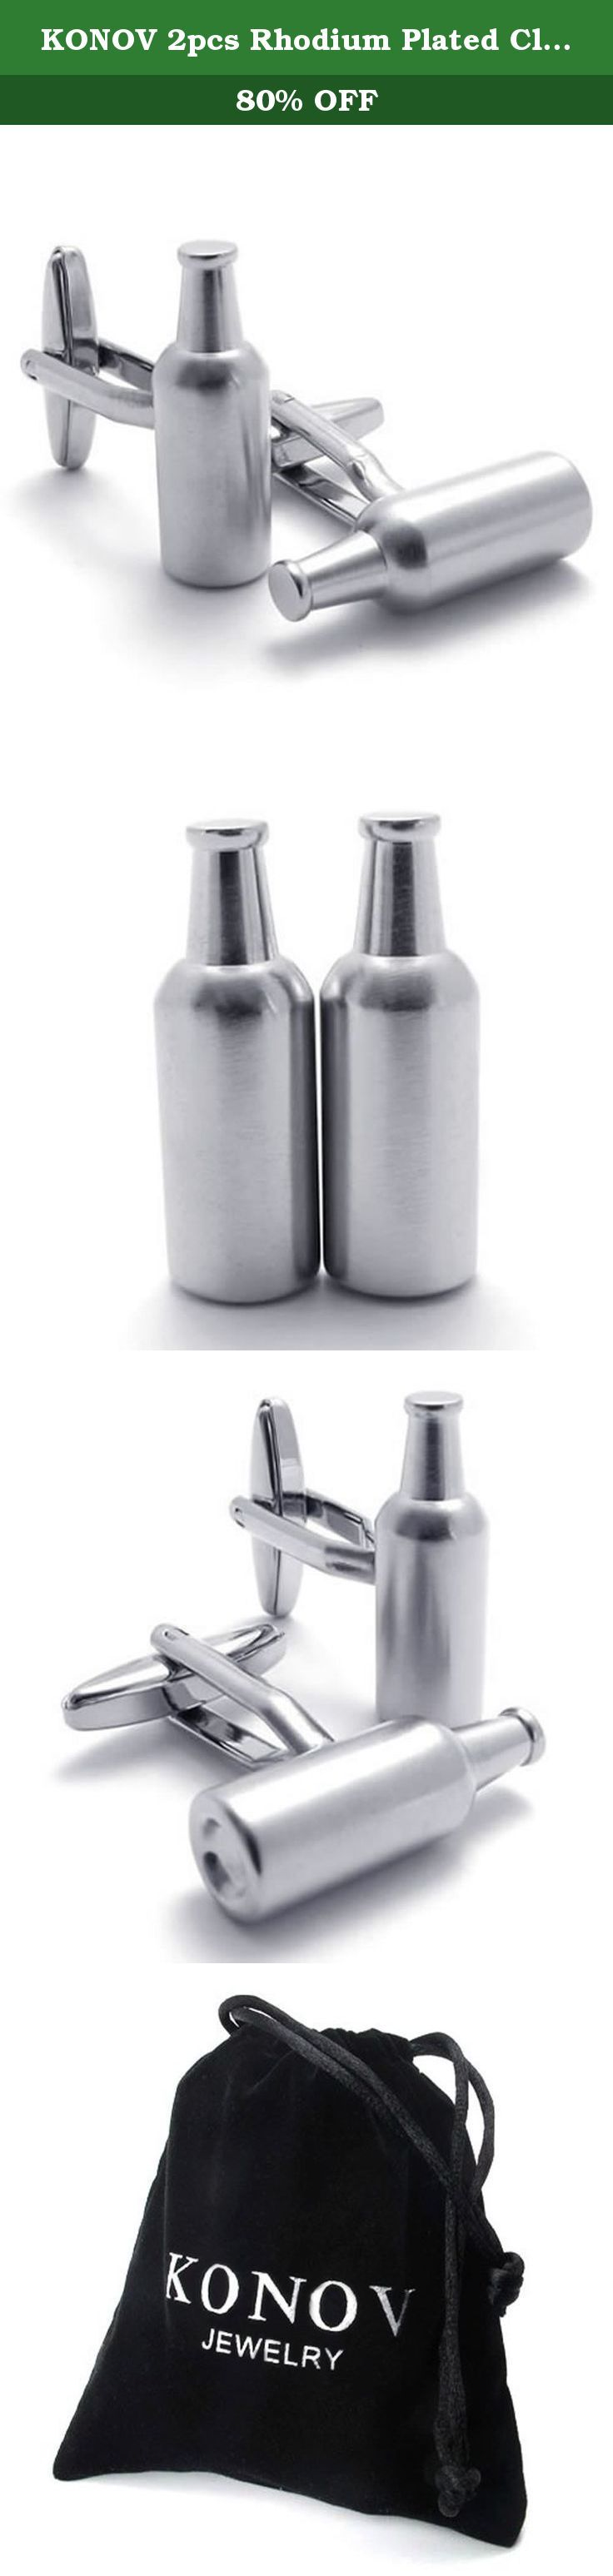 KONOV 2pcs Rhodium Plated Classic Personalized Beer Bottle Shirts Men's Cufflinks, Silver, 1 Pair. Why choose Stainless Steel Jewelry? Stainless Steel jewelry does not tarnish and oxidize, which can last longer than other jewelries. It is able to endure a lot of wear and tear. And it is amazingly hypoallergenic. Such advantages make it a more popular accessory. Why need Stainless Steel Jewelry? High quality stainless steel has high resistance to rust, corrosion and tarnishing, which…